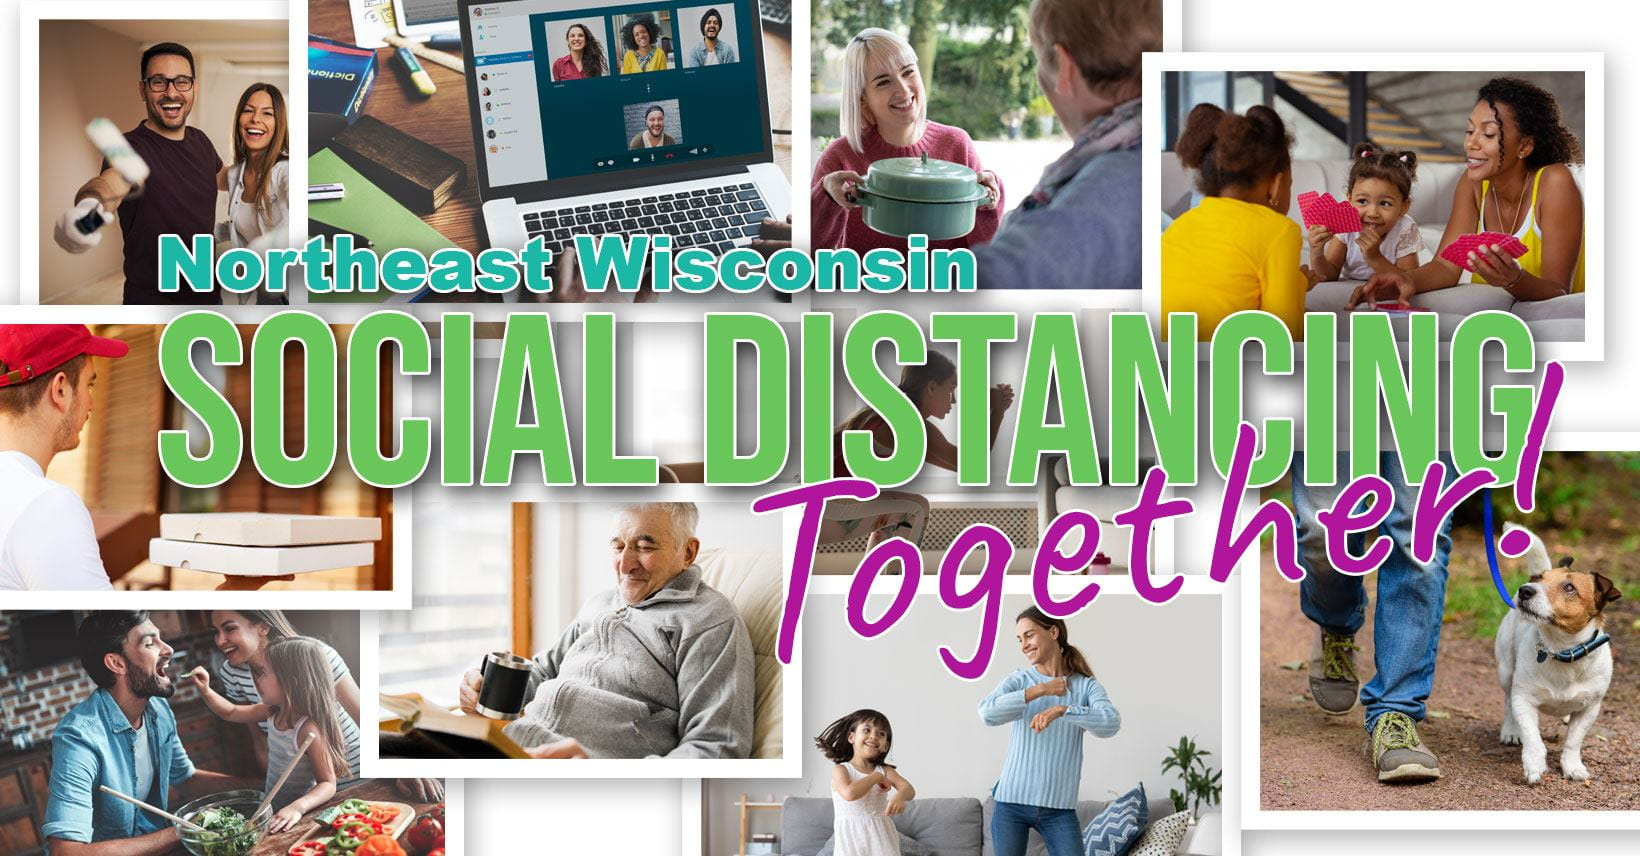 NEW Social Distancing - Together facebook group cover image